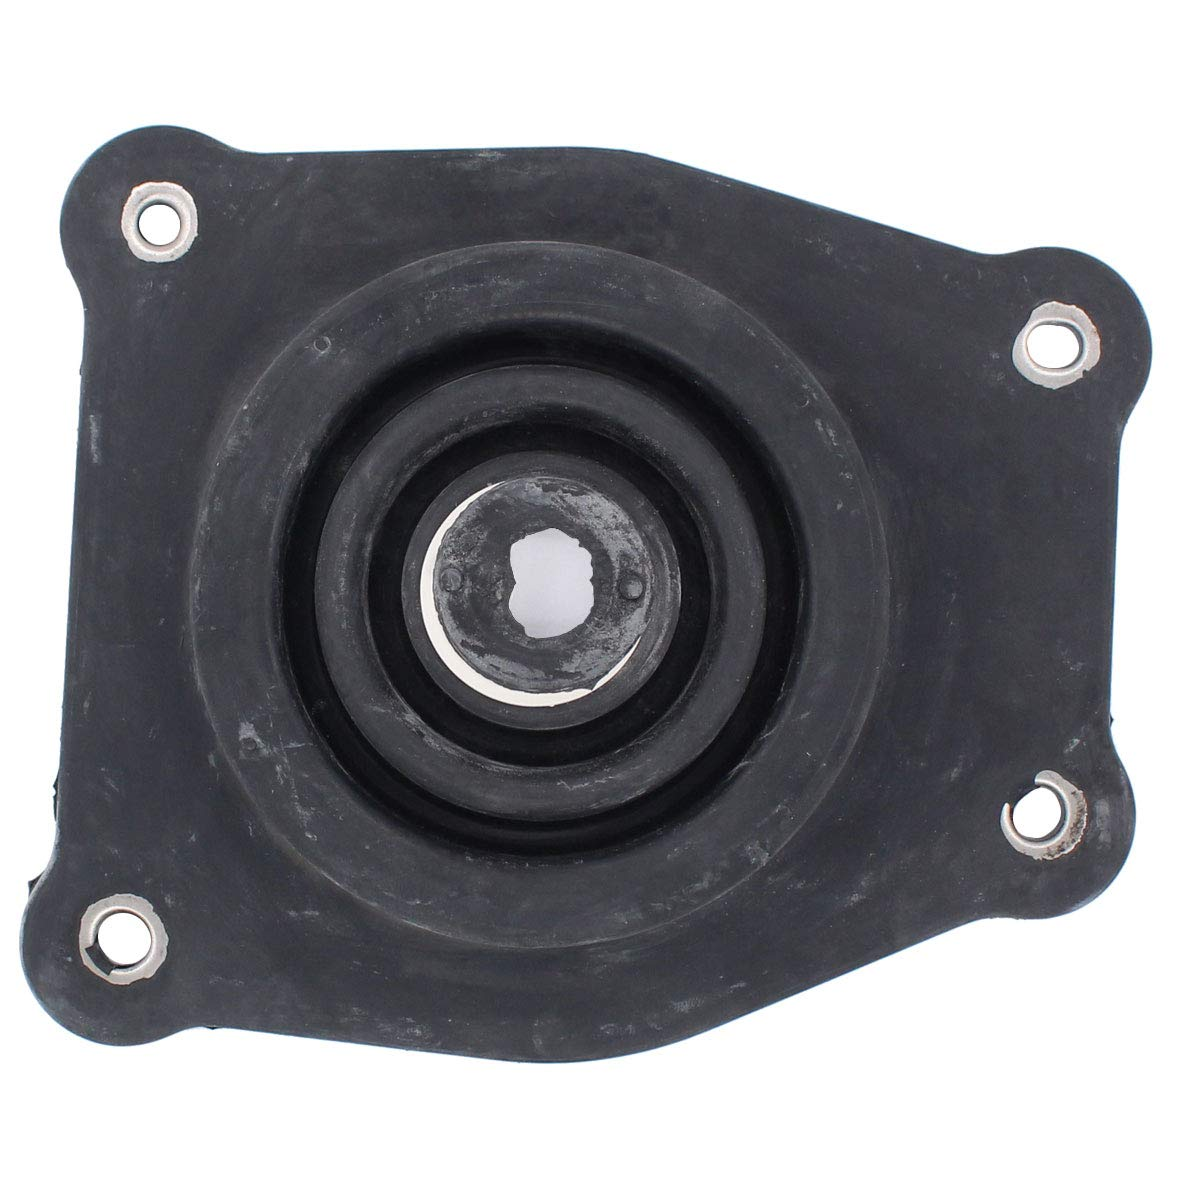 NewYall Transmission Shift Lever Shifter Boot Seal Rubber Gear Insulator